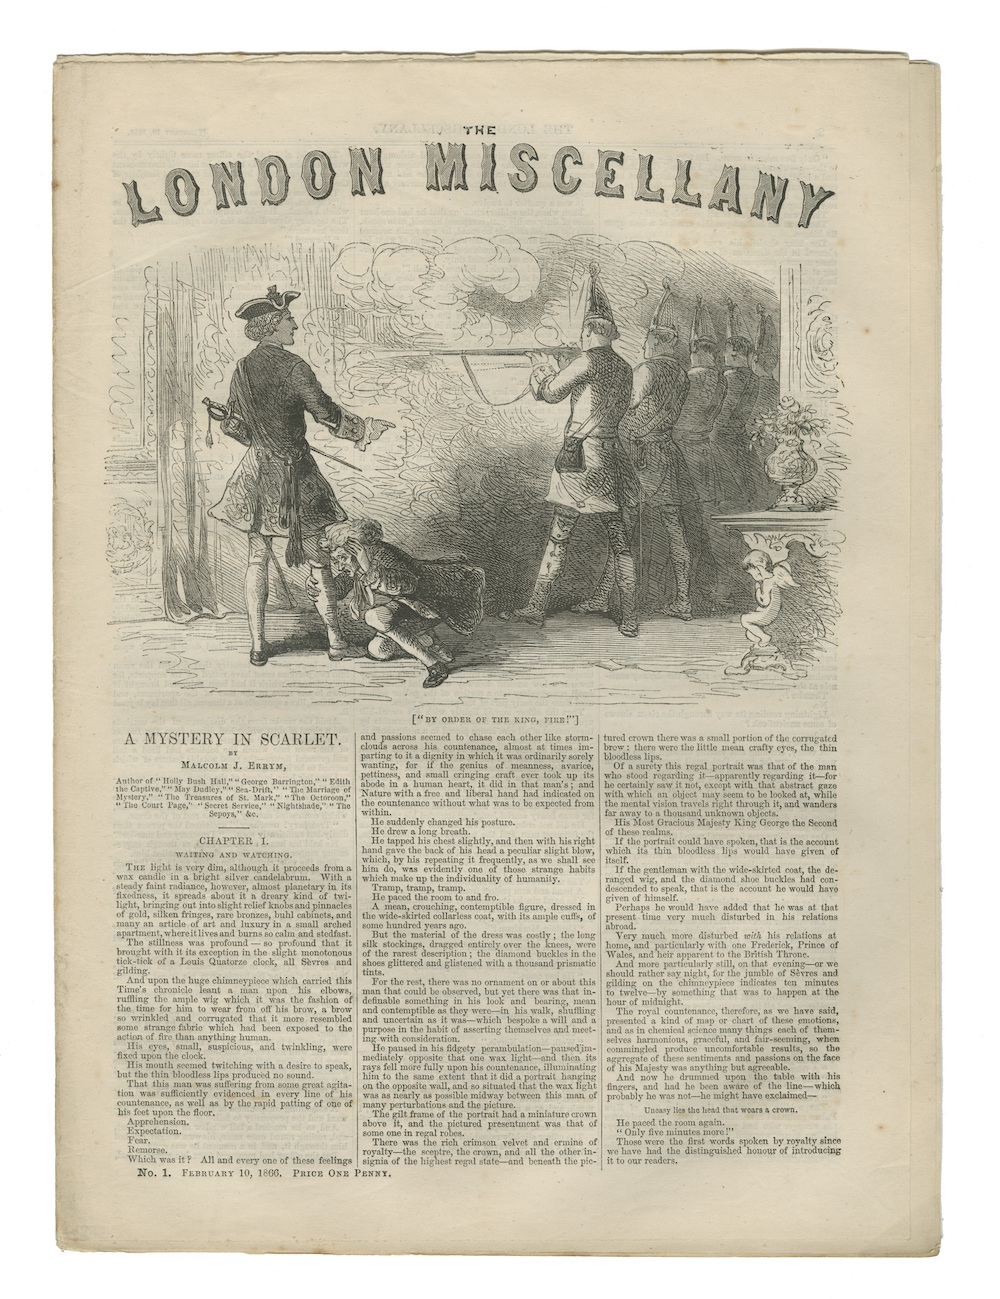 Illustration: A Mystery in Scarlet, The London Miscellany No. 1